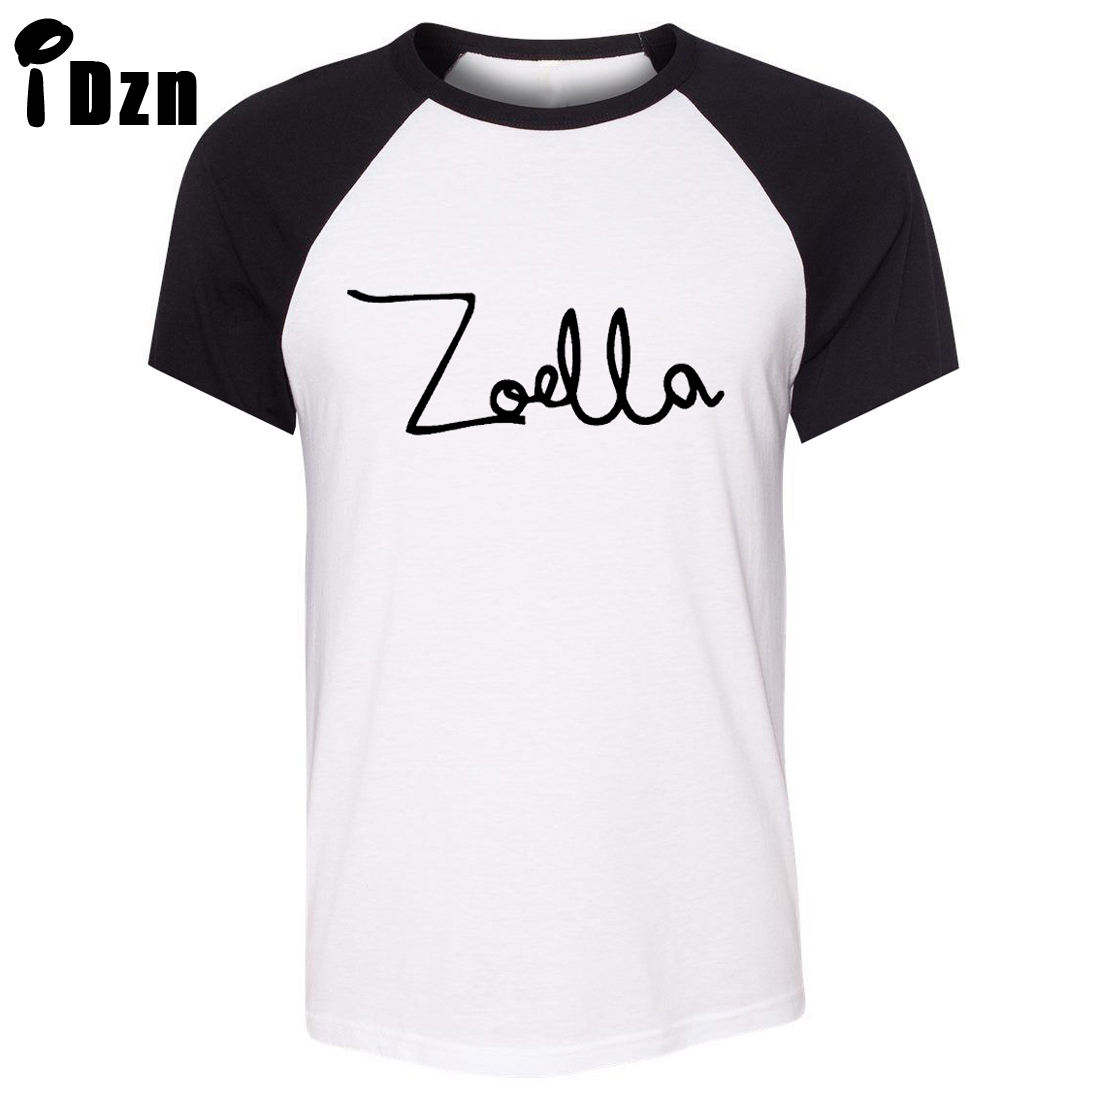 summer short sleeve t shirt zoe sugg youtube zoella vlog fashion just say yes beauty art pattern. Black Bedroom Furniture Sets. Home Design Ideas